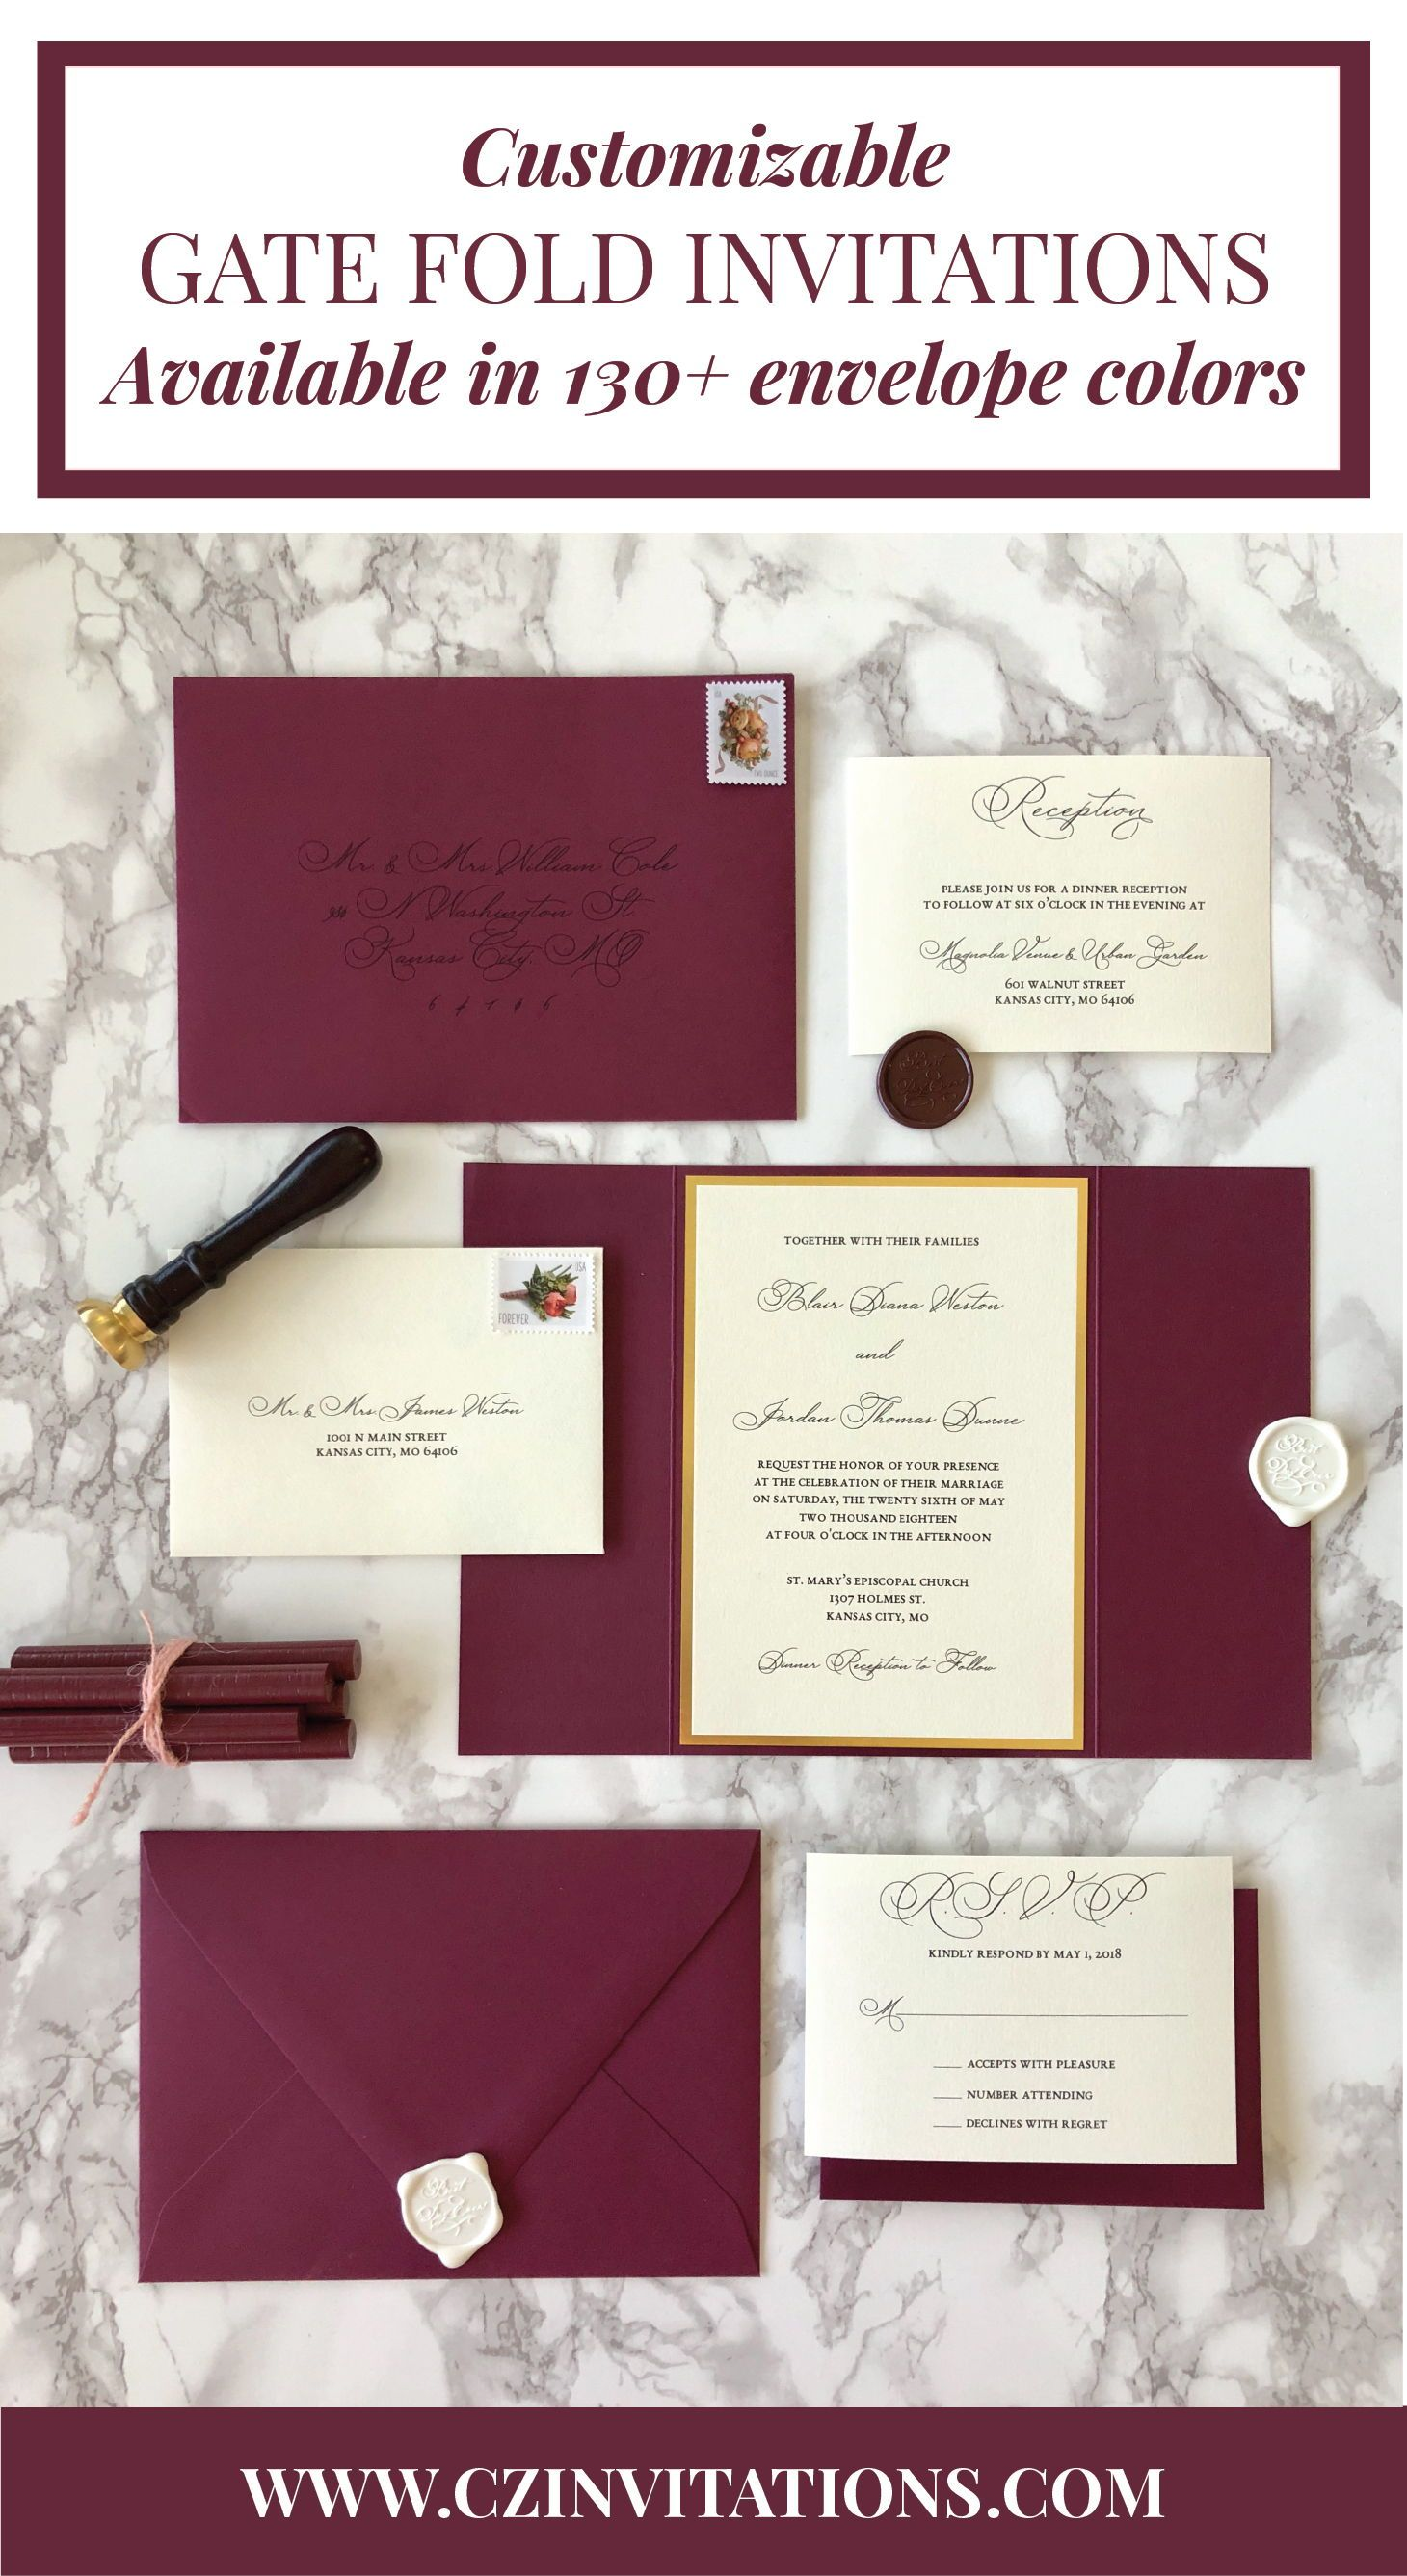 gate fold invitations are trendy and classic we love this burgundy